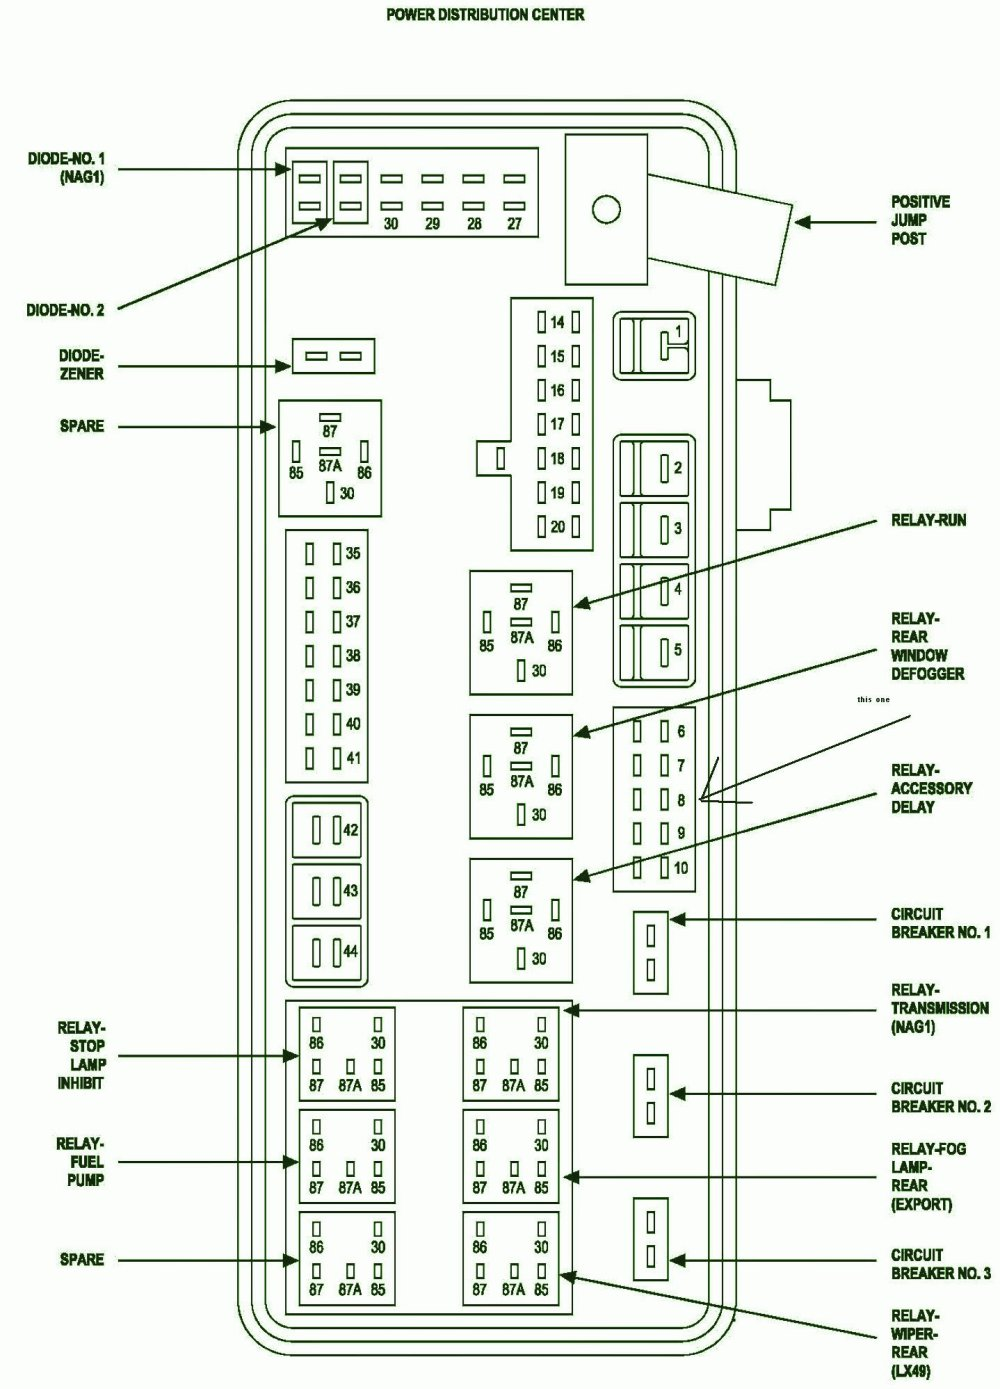 medium resolution of chrysler aspen 2008 fuse box wiring library rh 25 codingcommunity de 2009 chrysler aspen radio wiring diagram 2008 chrysler aspen